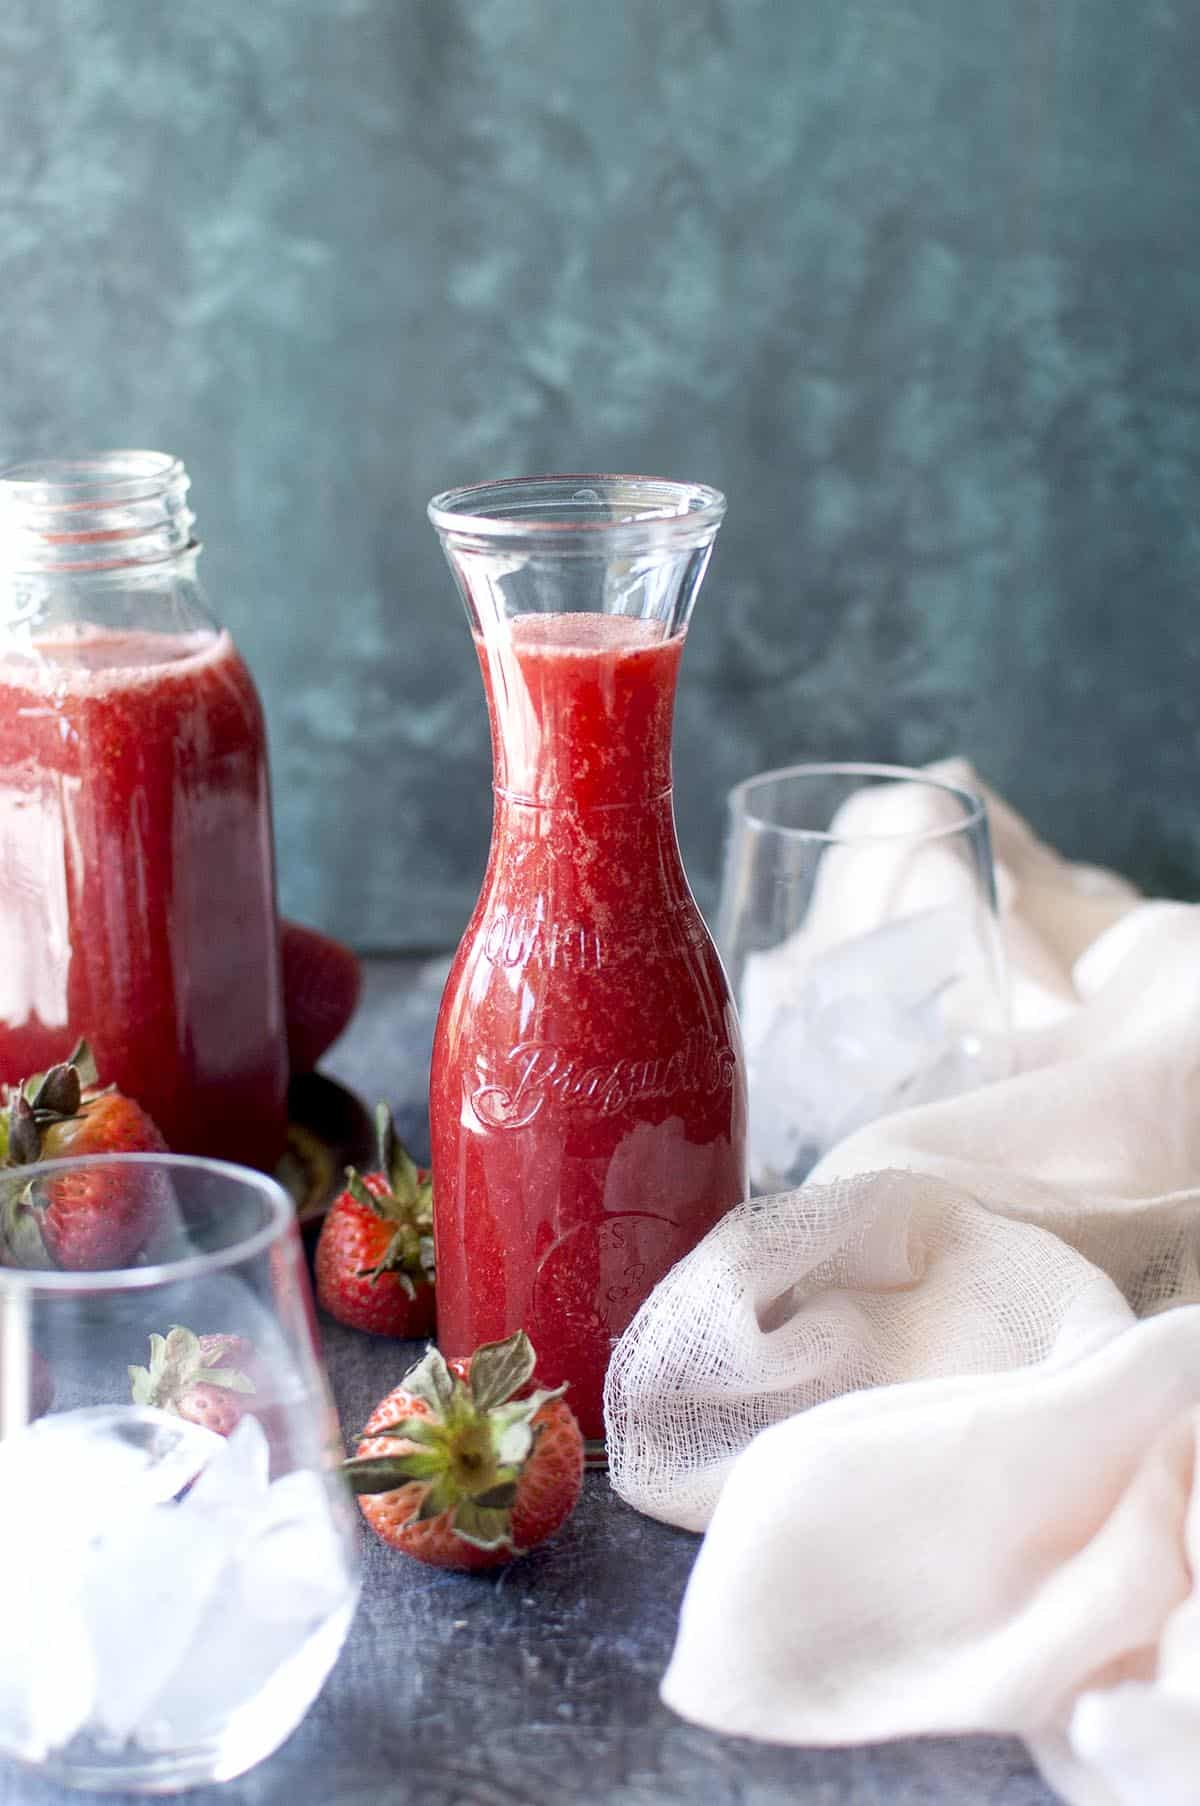 2 glass jars with strawberry crush with fresh berries on the board